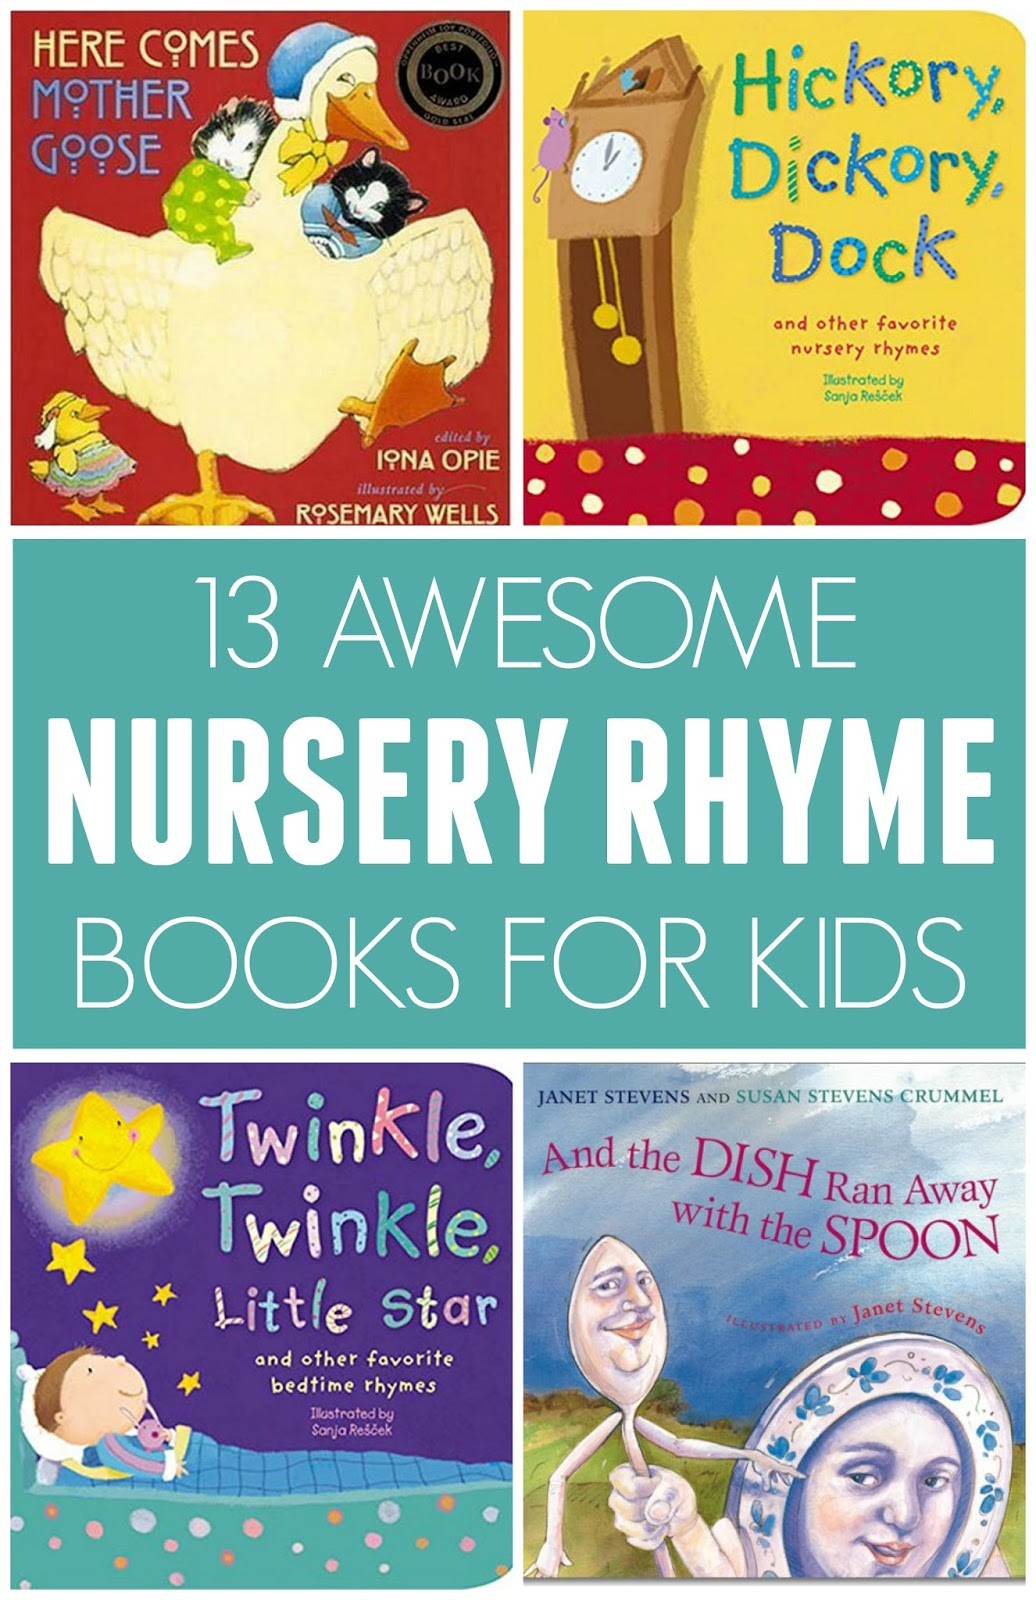 Do You Have Any Additional Books Can Add To This List